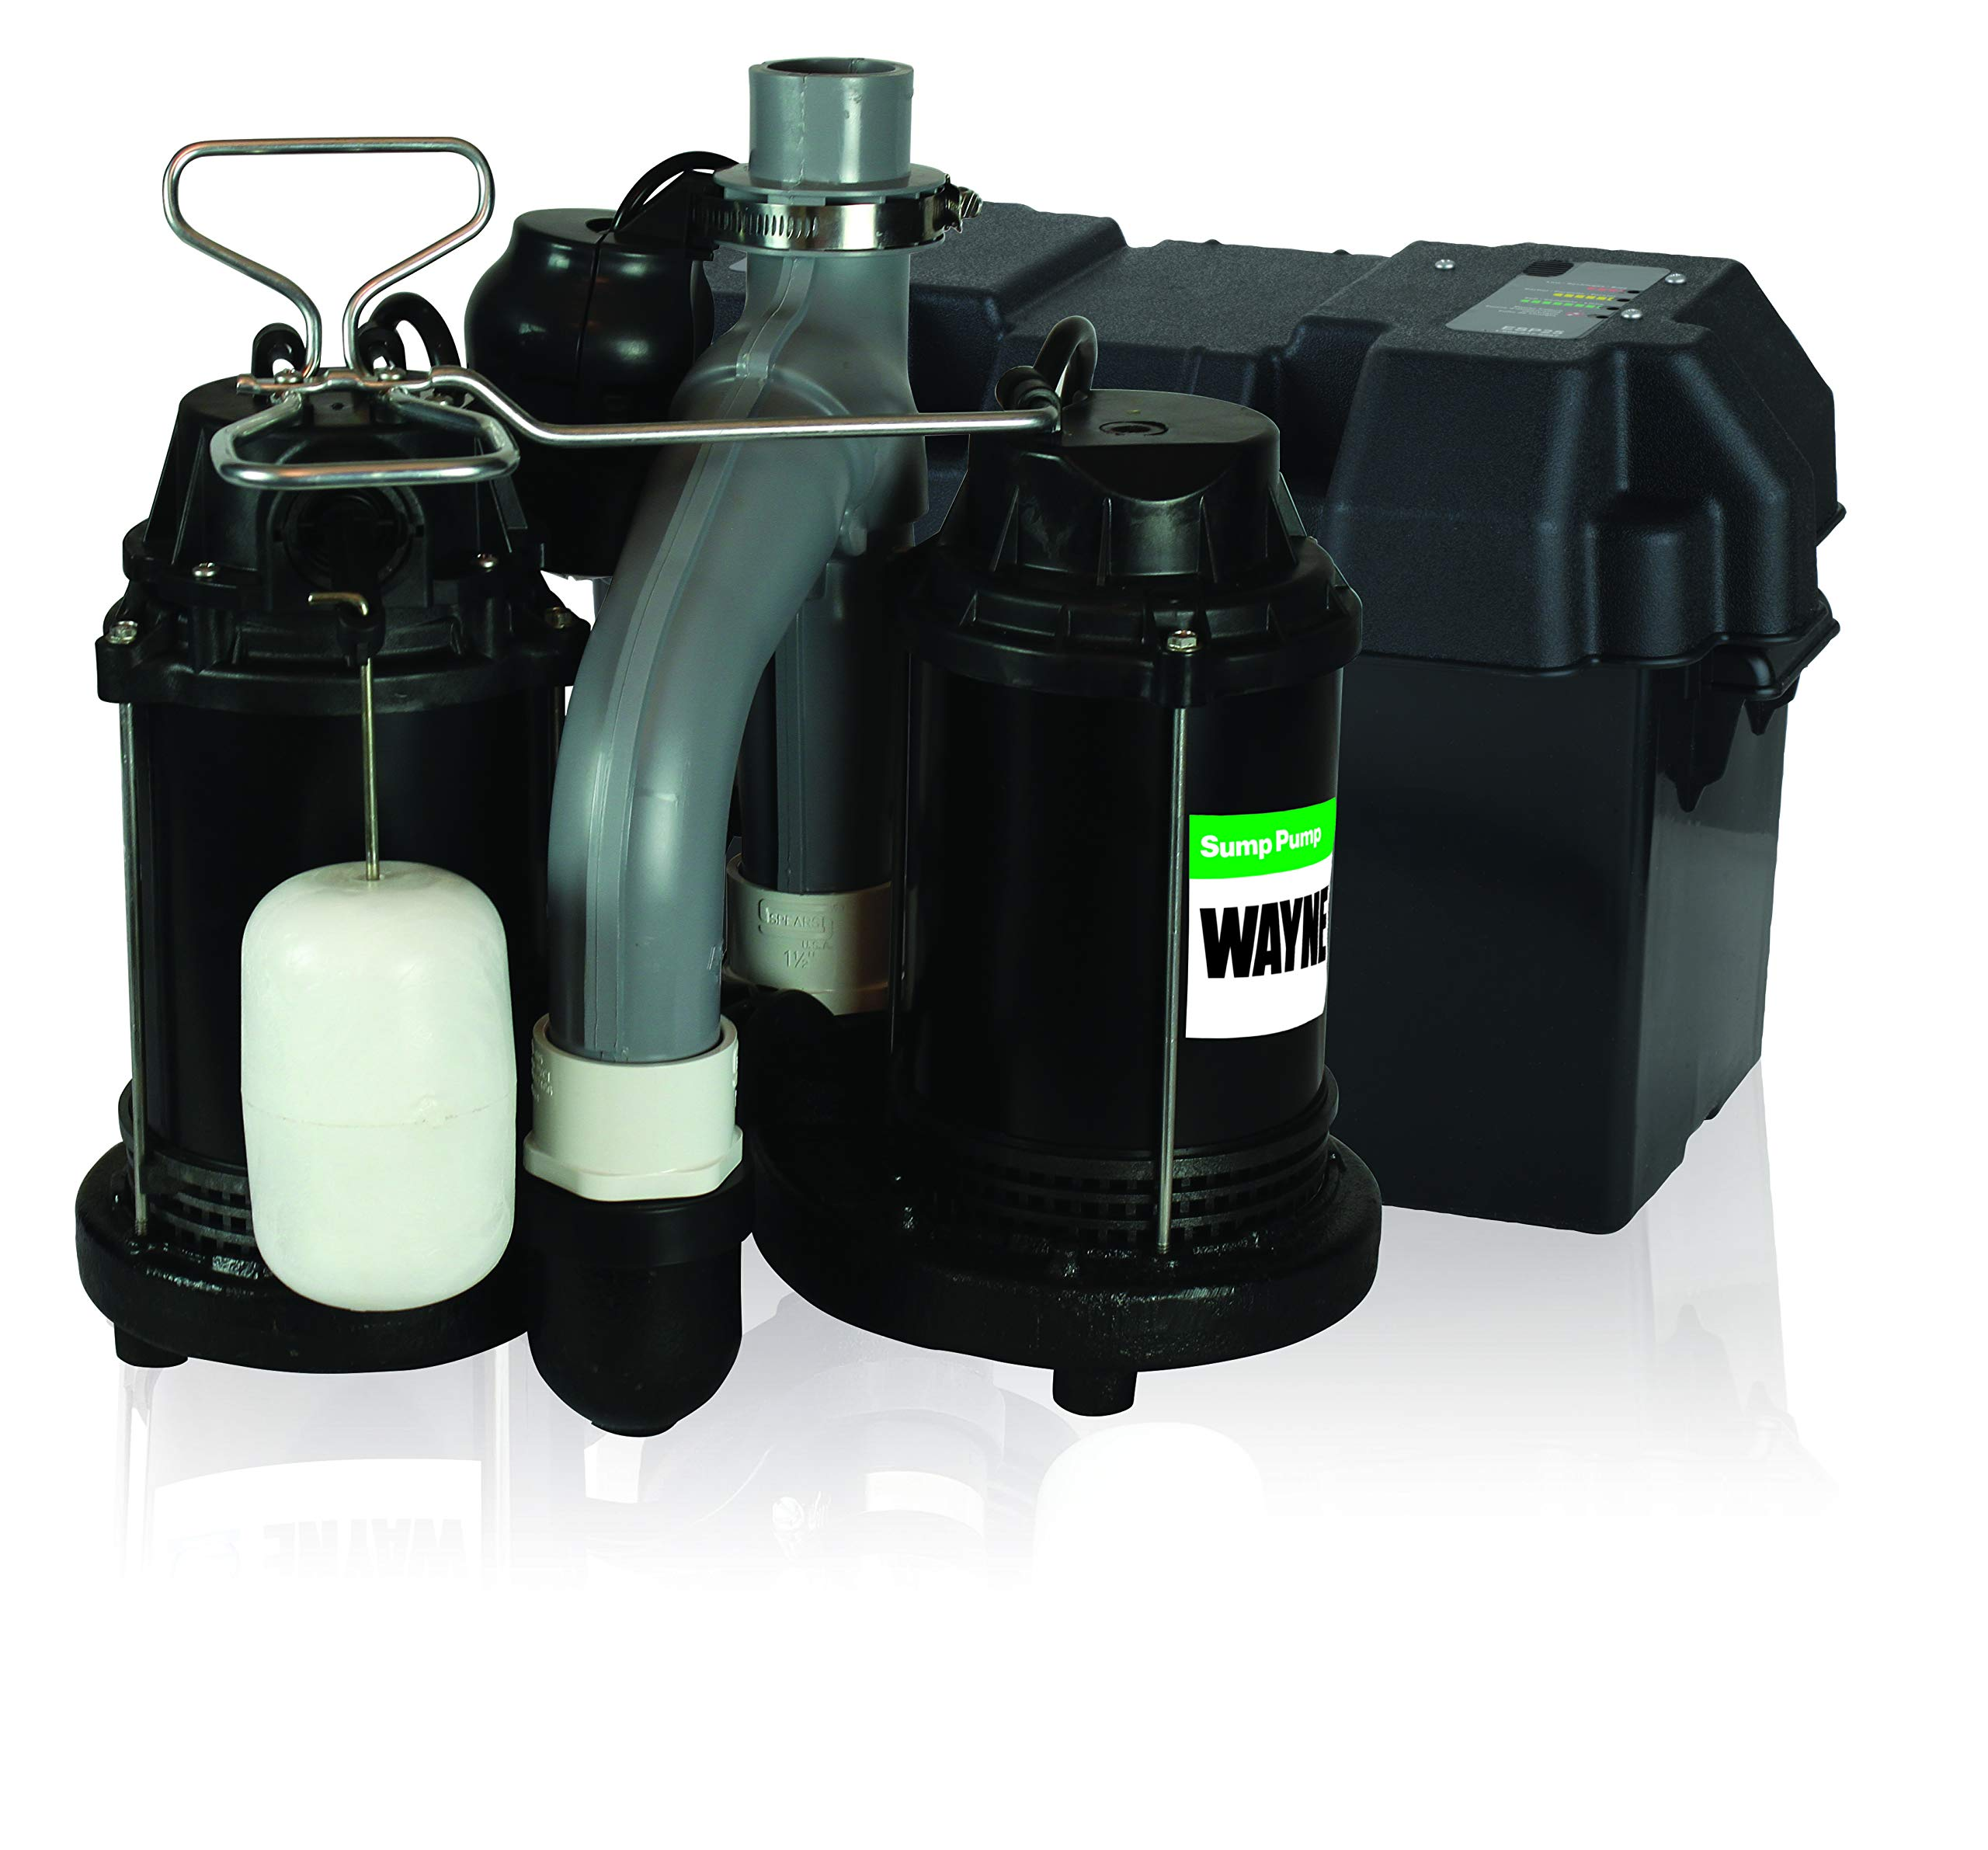 Wayne WSS30VN Upgraded Combination 1/2 HP and 12-Volt Battery Back Up System by Wayne